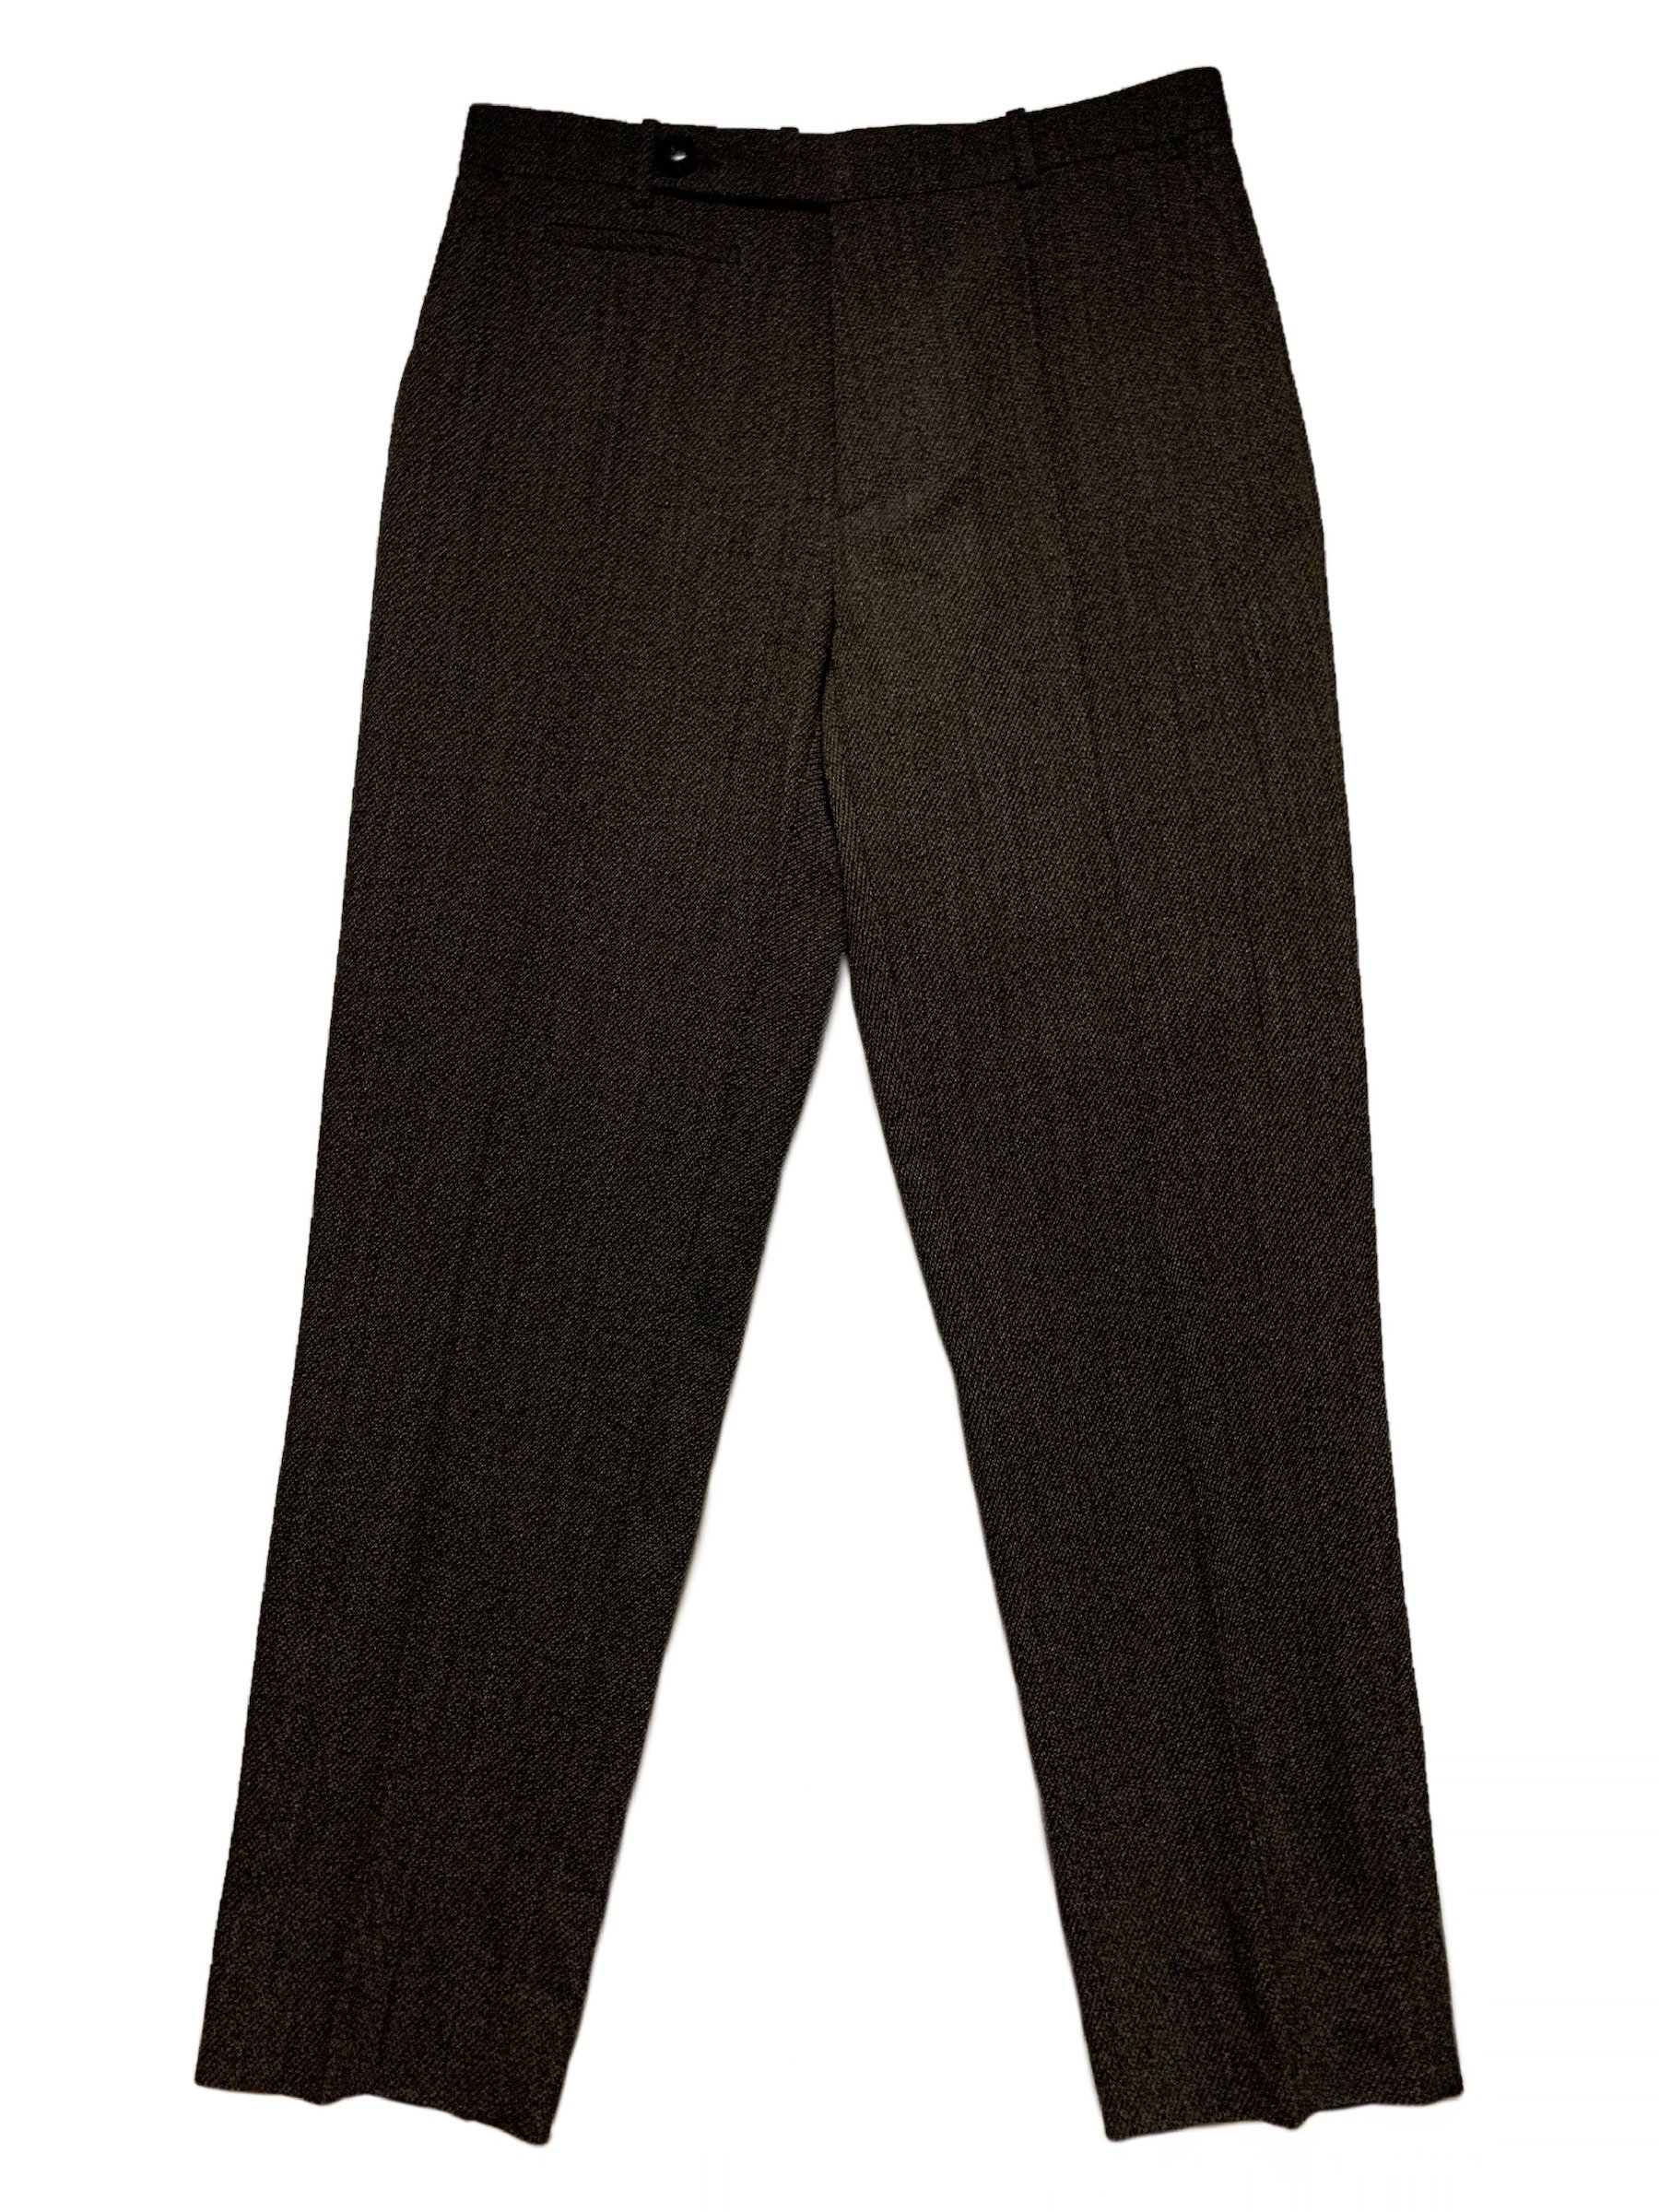 ZIGGURAT TAILORED TROUSER<img class='new_mark_img2' src='https://img.shop-pro.jp/img/new/icons46.gif' style='border:none;display:inline;margin:0px;padding:0px;width:auto;' />